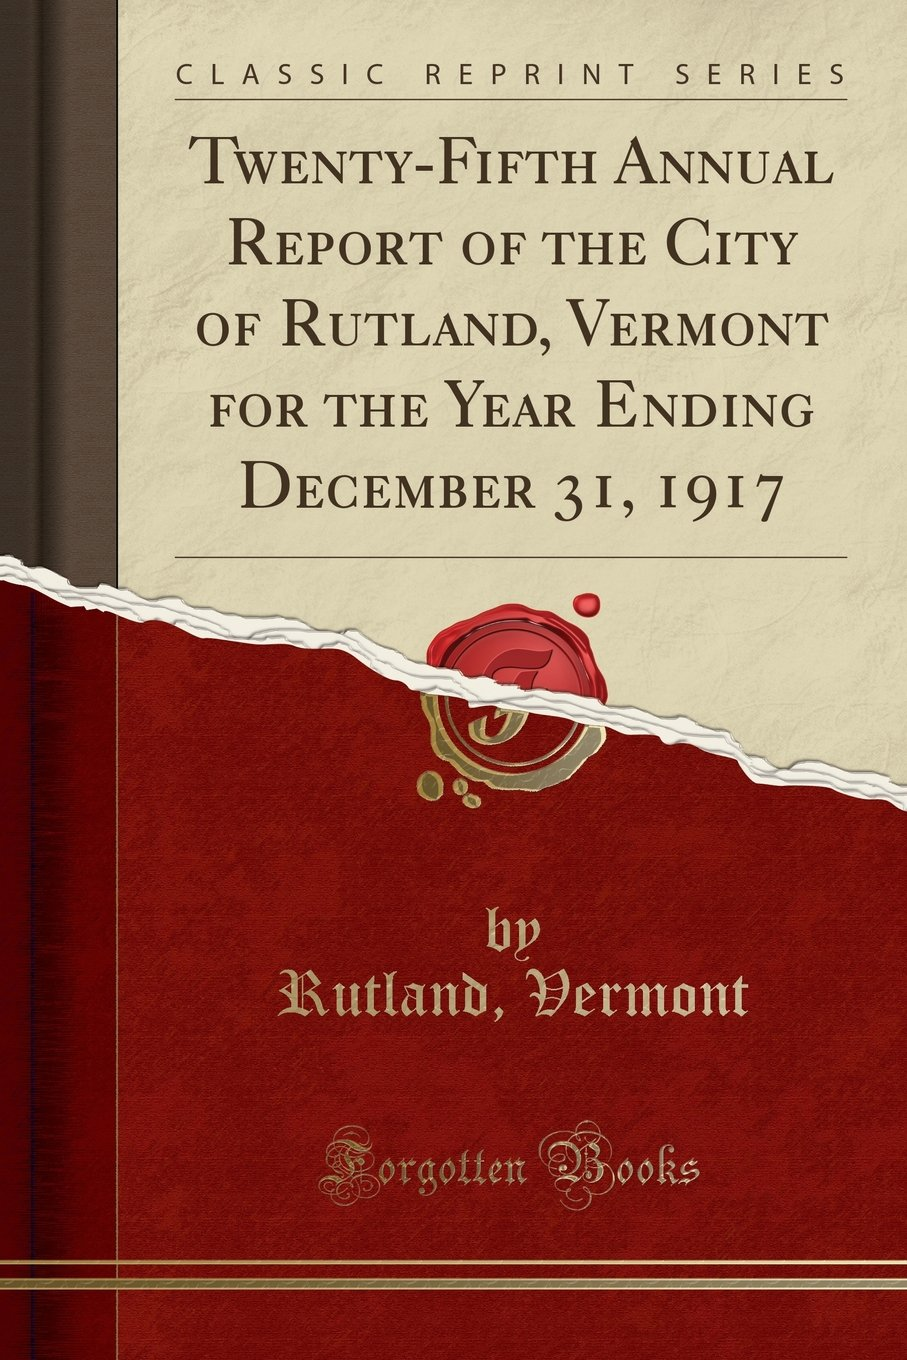 Twenty-Fifth Annual Report of the City of Rutland, Vermont for the Year Ending December 31, 1917 (Classic Reprint) ebook